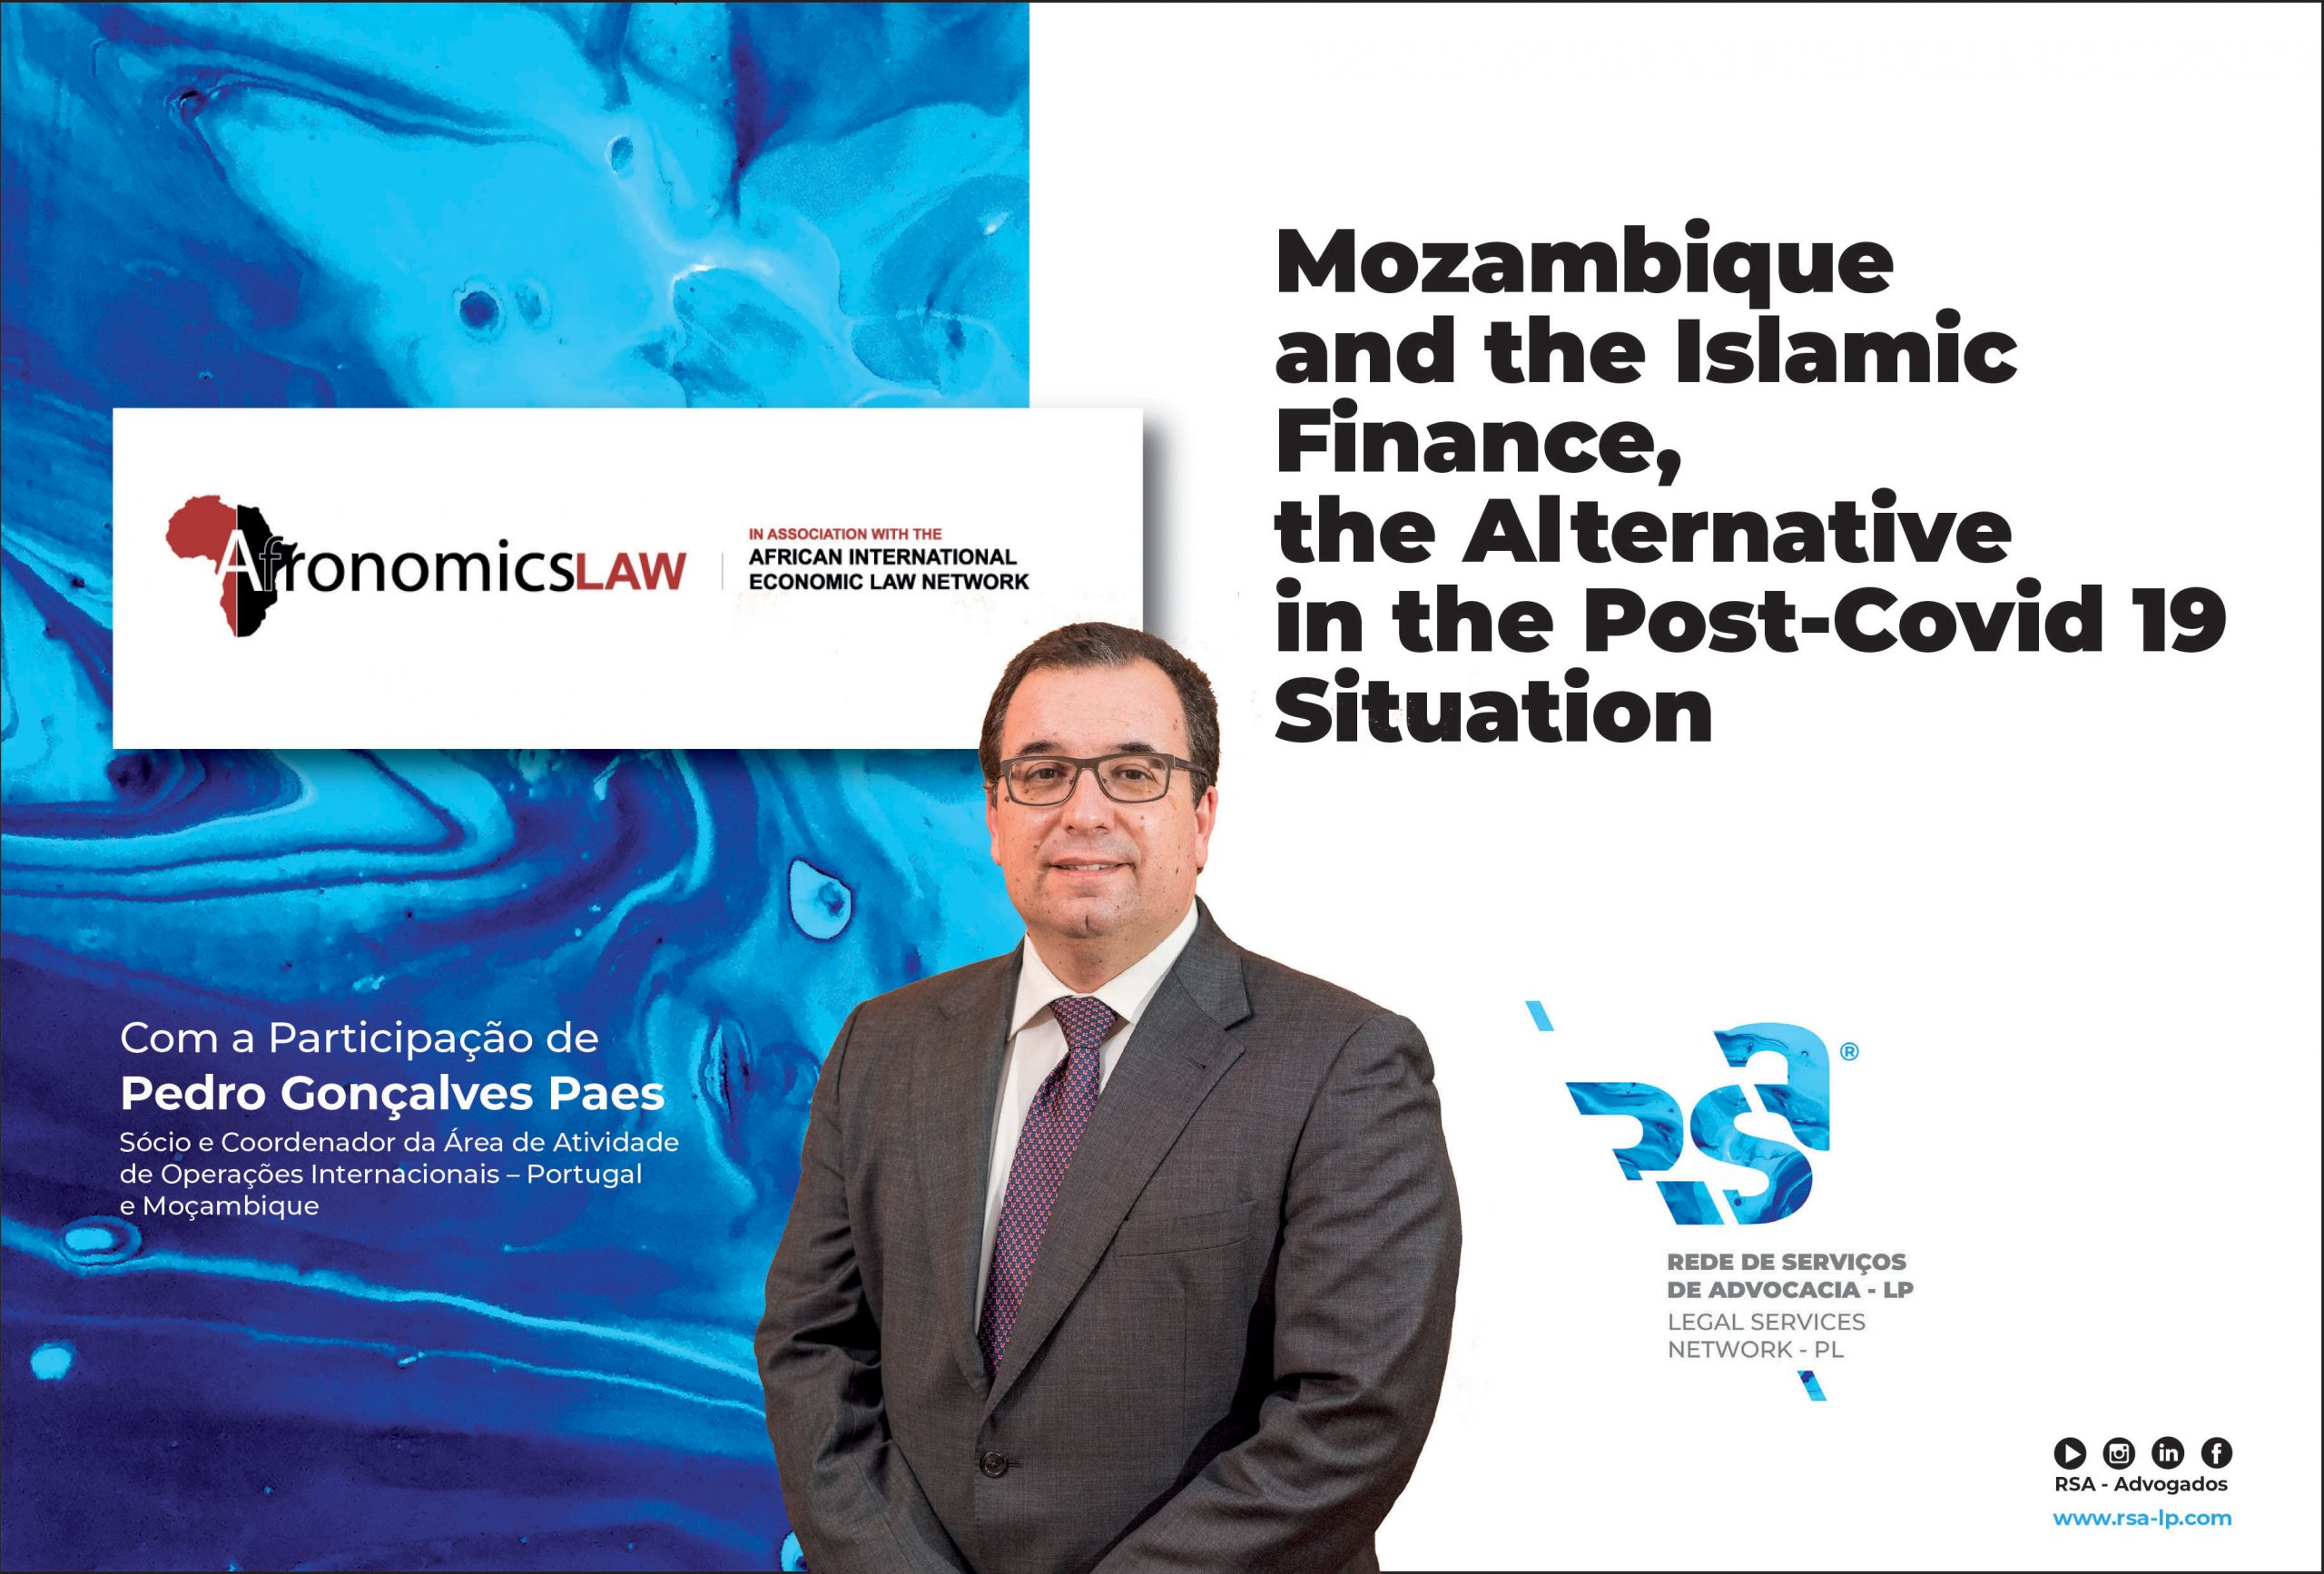 Mozambique and the Islamic Finance, the Alternative in the Post-Covid 19 Situation